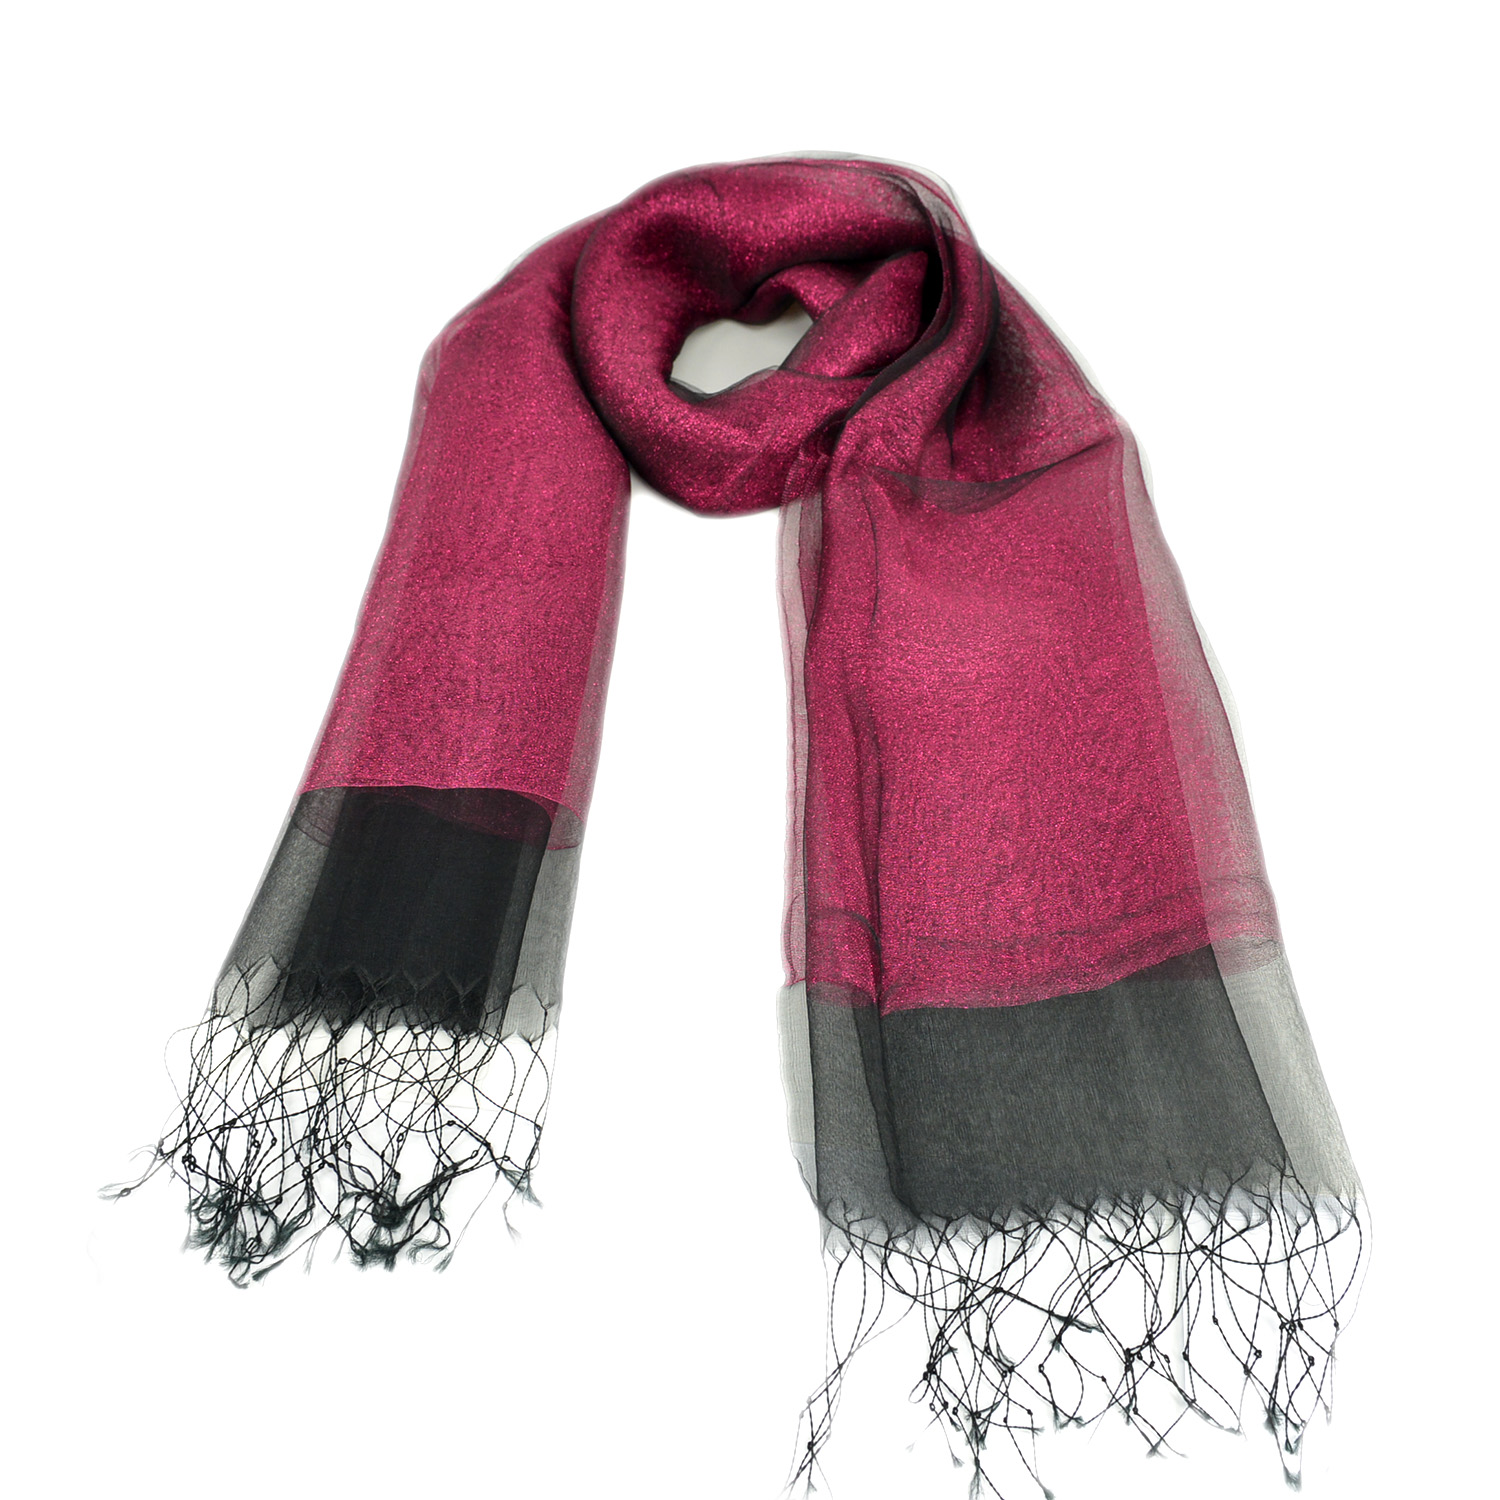 DG women's scarf – wine red